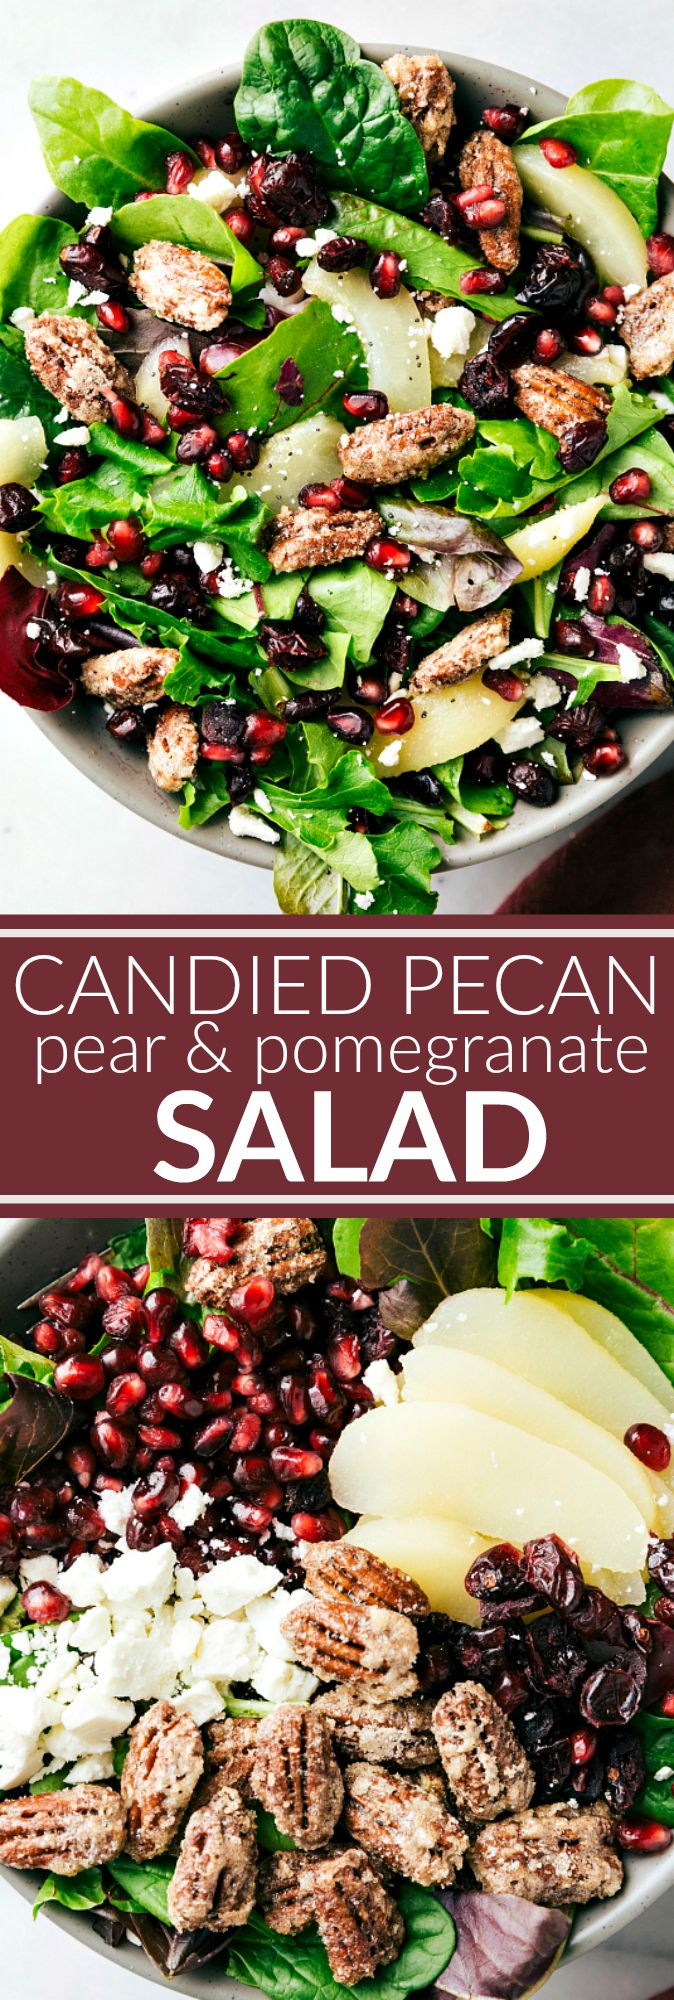 Best Holiday Salad An Easy To Make And Delicious Side Salad Candied Pecans